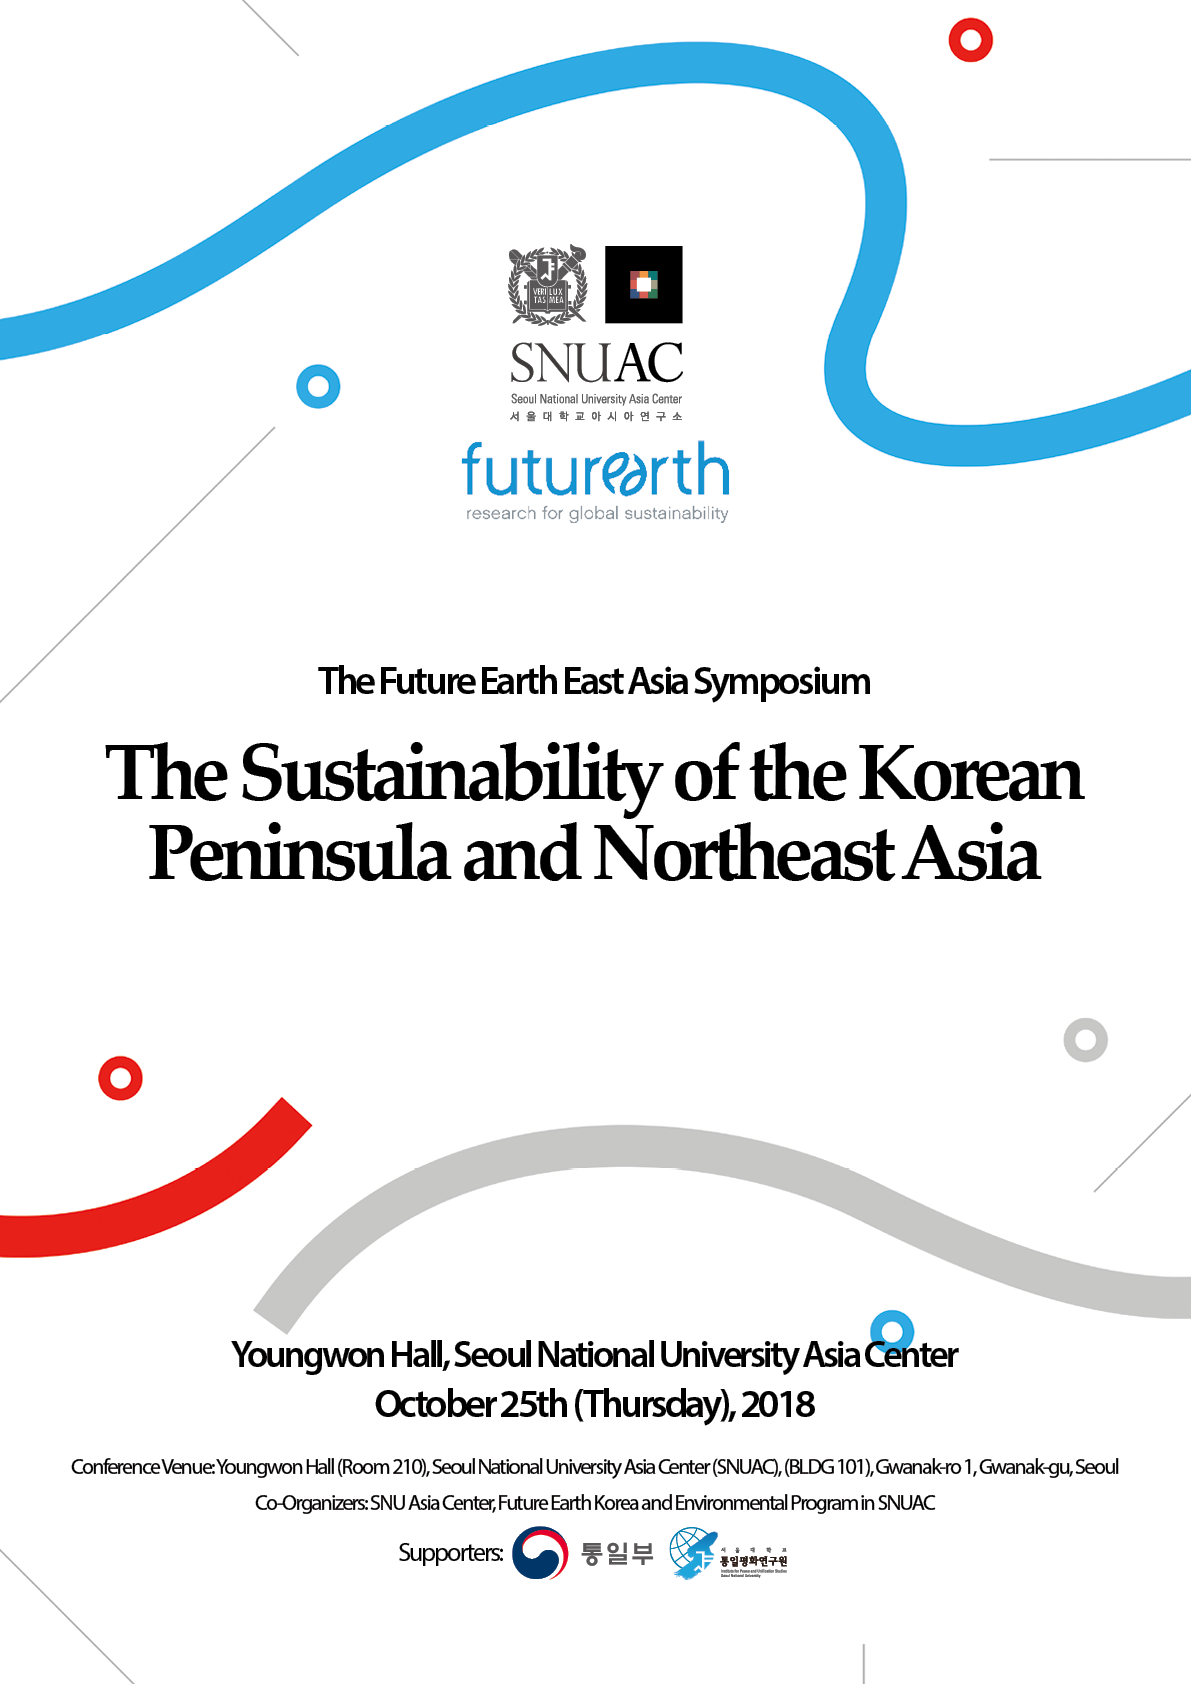 The Future Earth East Asia Symposium: The Sustainability of